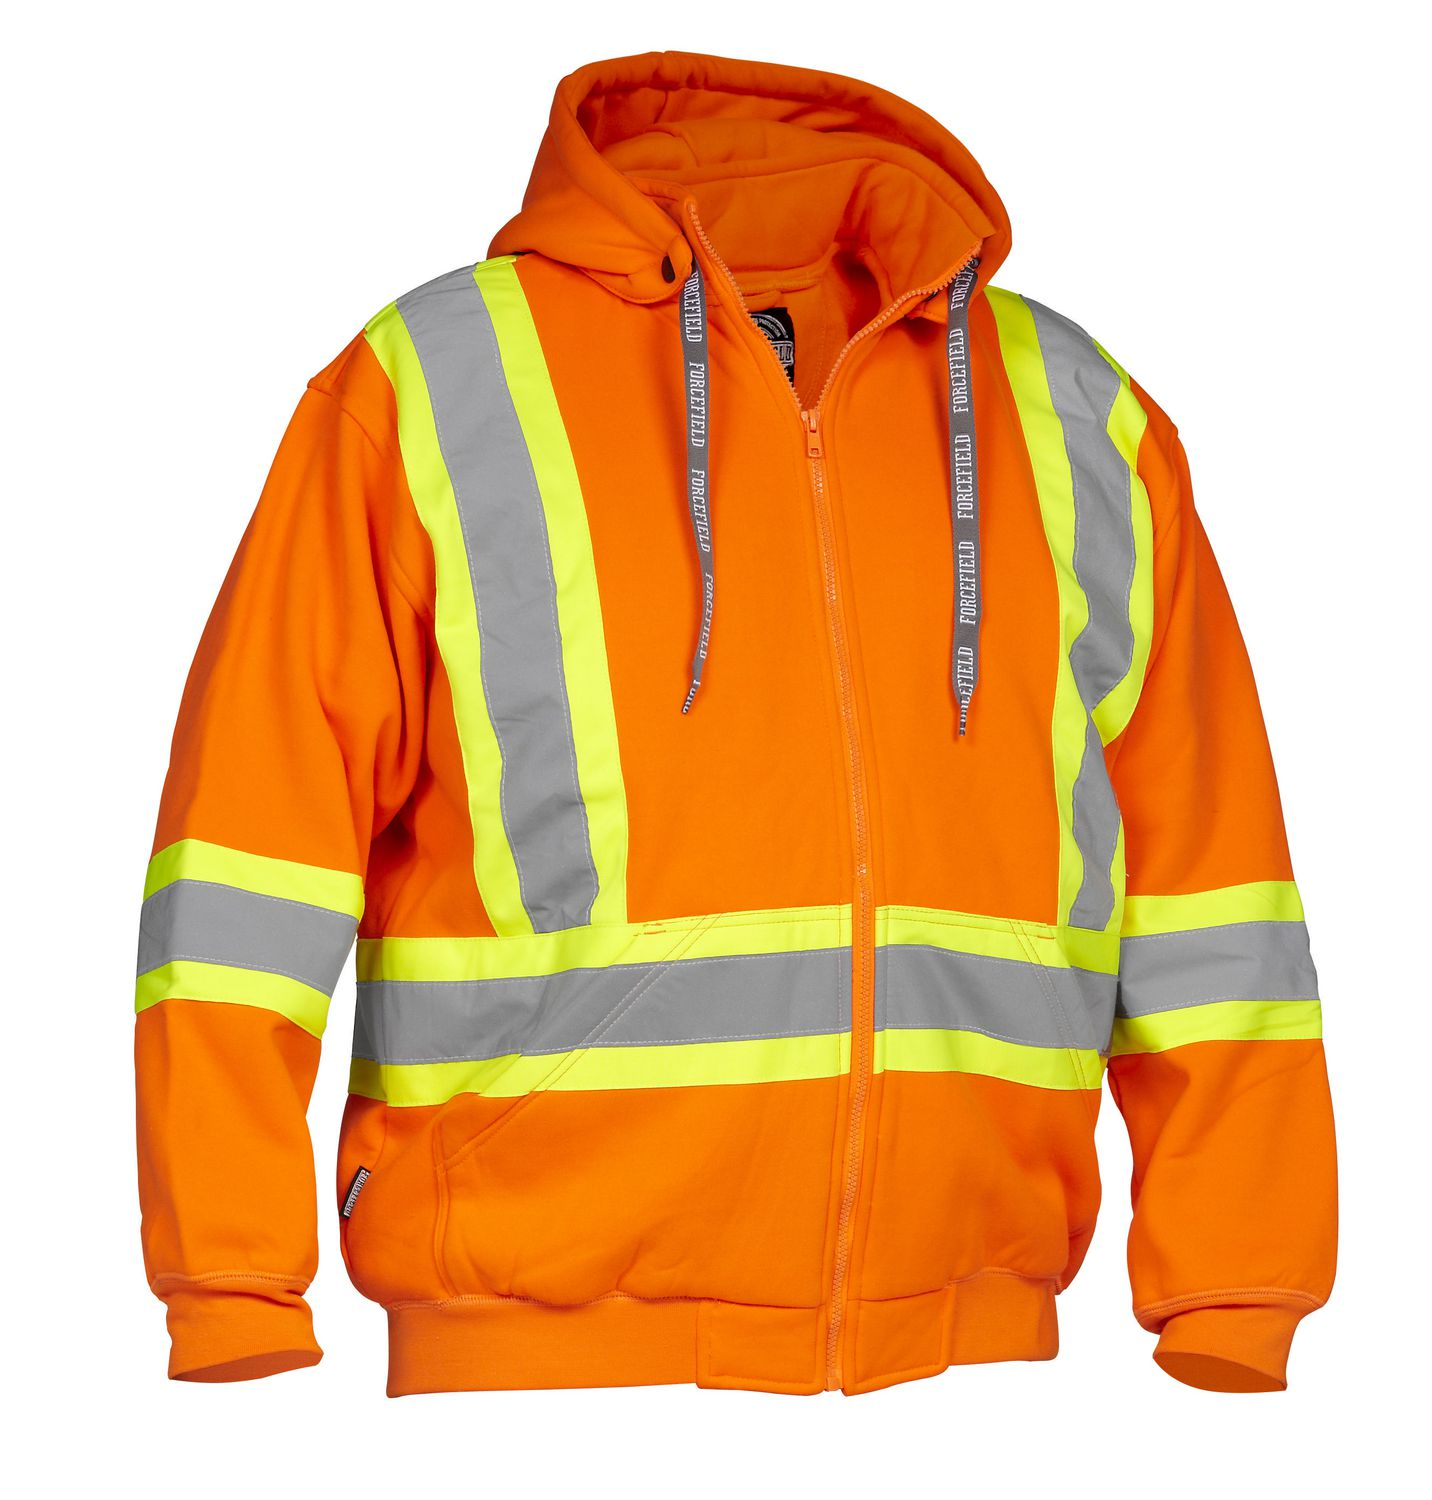 Forcefield Hi-Vis Safety Hoodie (Detachable Hood) 024-P814OR